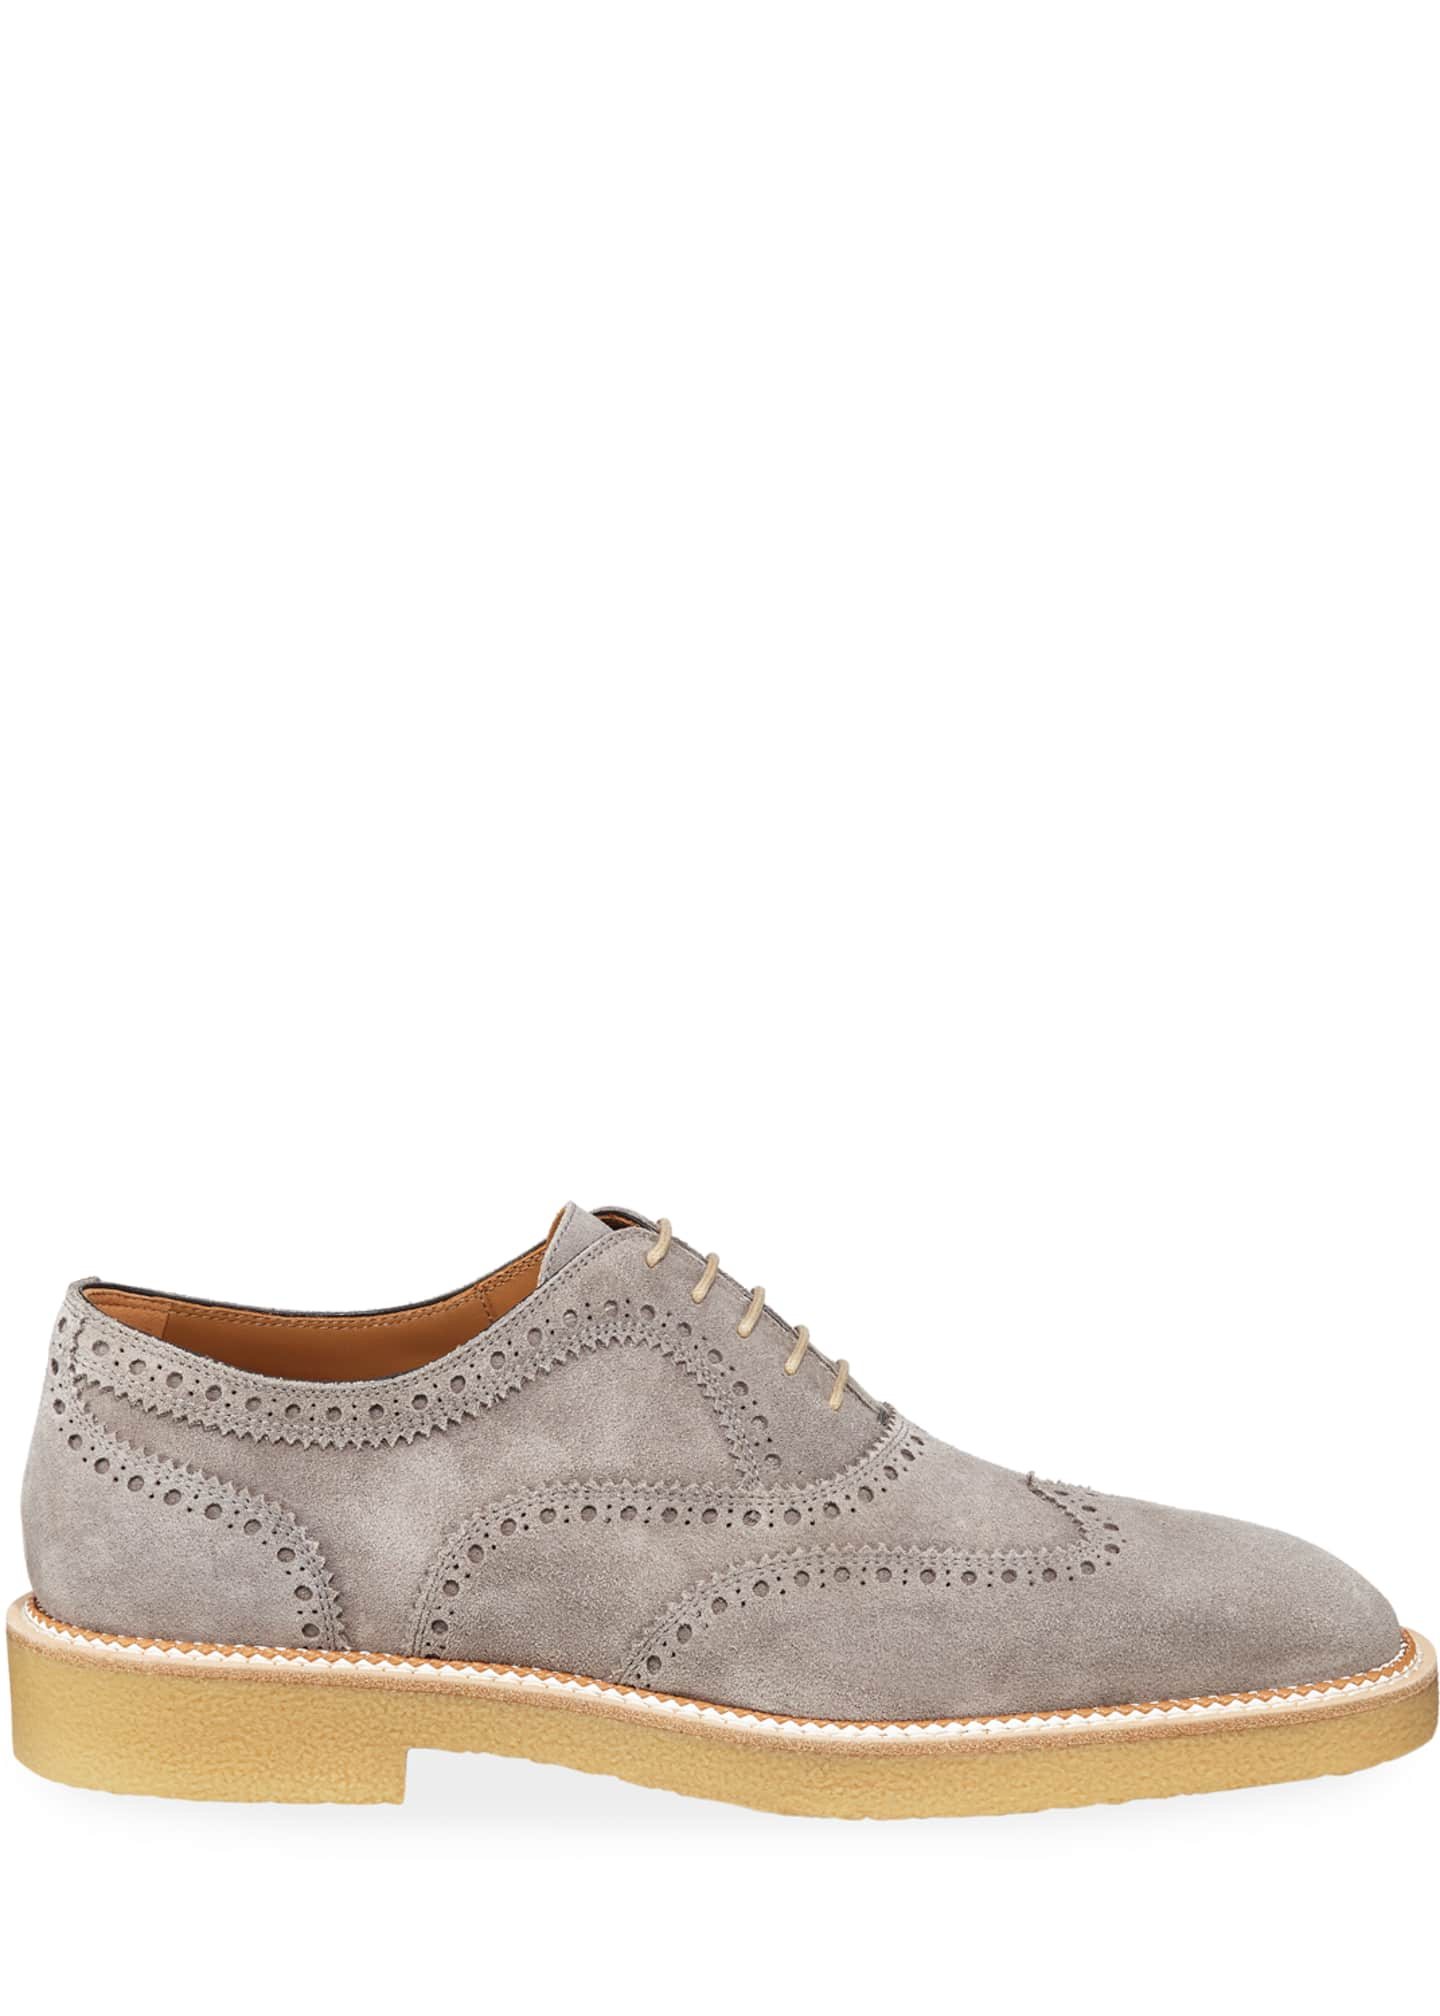 Image 3 of 4: Men's Charlie Crepe-Sole Suede Wing-Tip Oxford Shoes